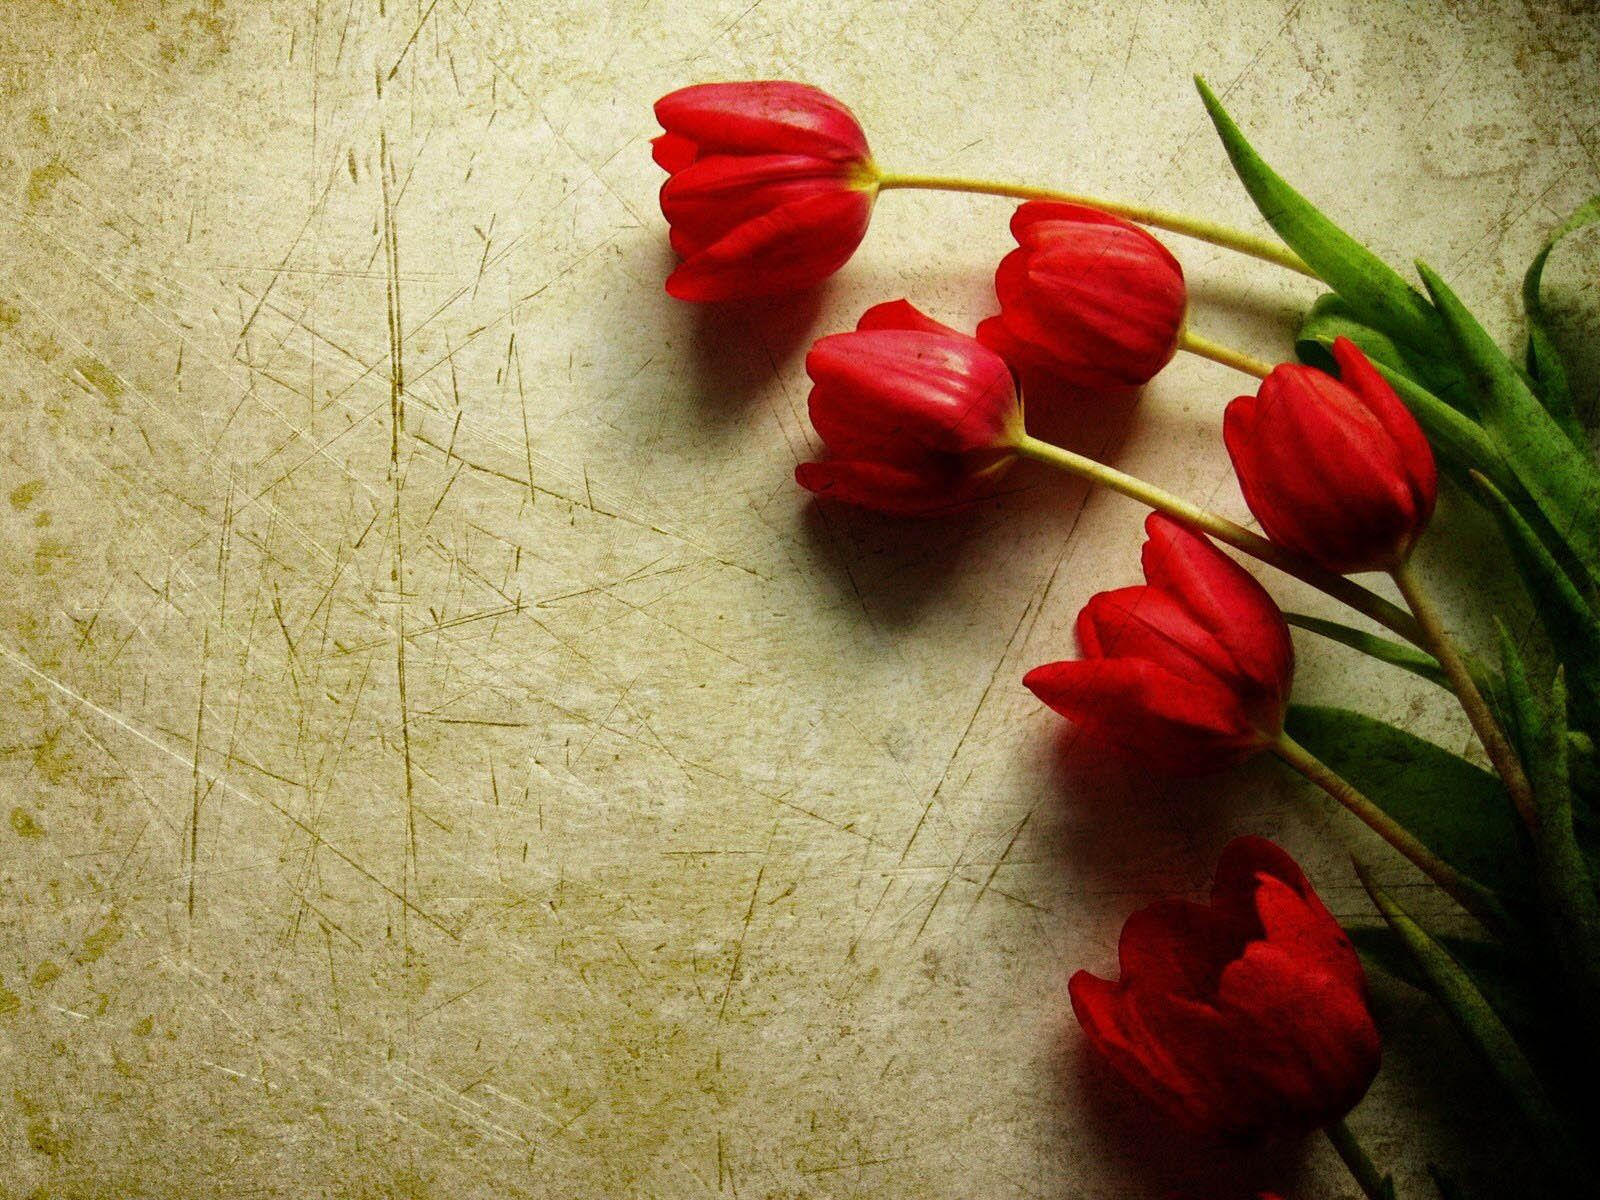 High quality tulips wallpapers download wallpaper pinterest hd high quality tulips wallpapers download wallpaper pinterest thecheapjerseys Image collections